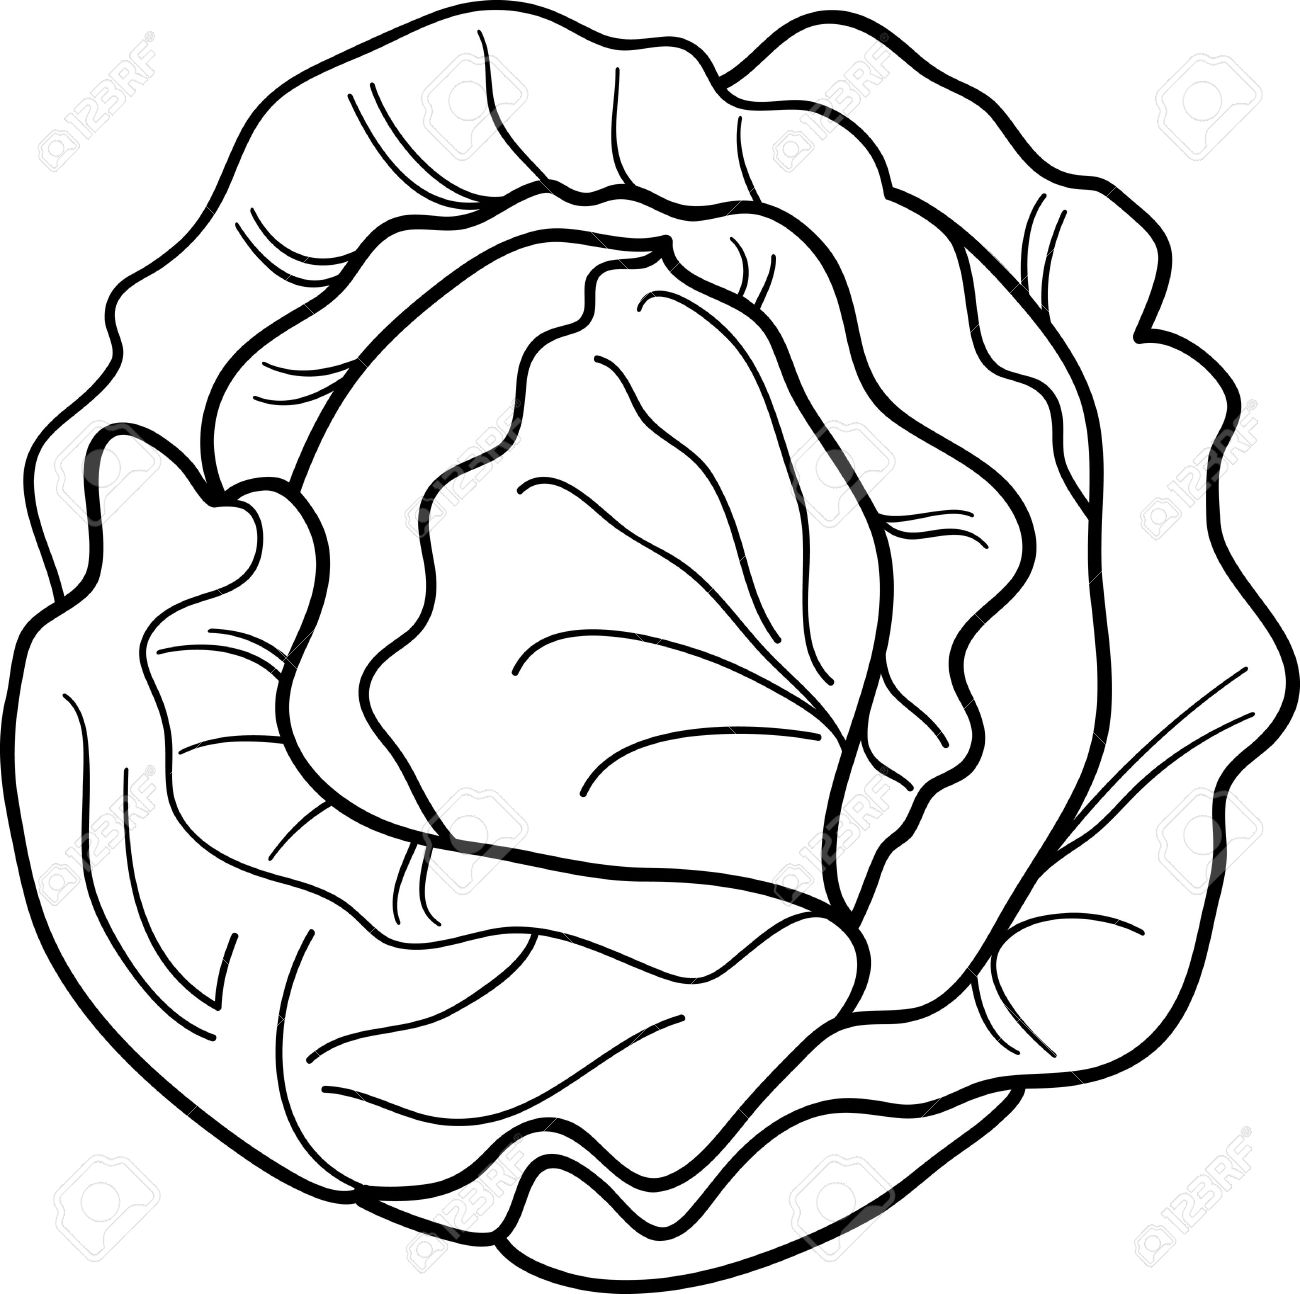 Cabbage clipart black and white. Station